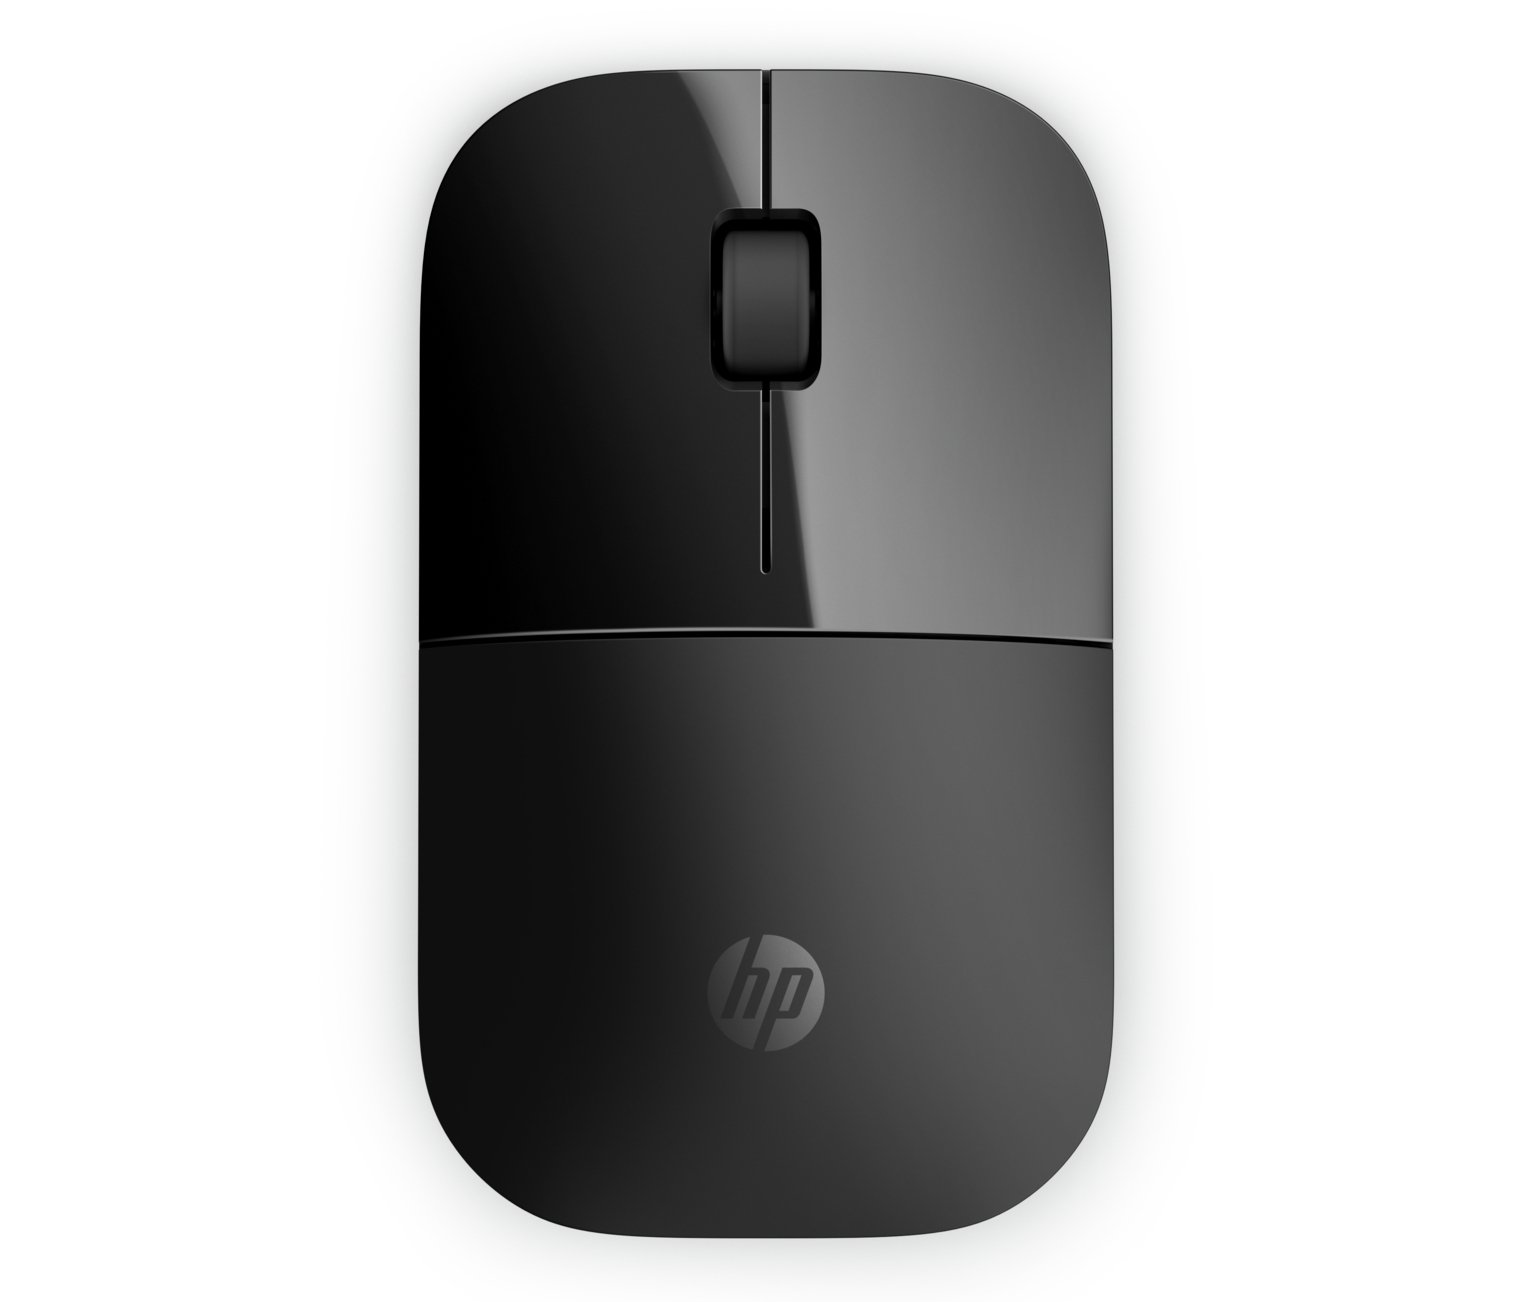 HP Z3700 Wireless Mouse - Black from HP